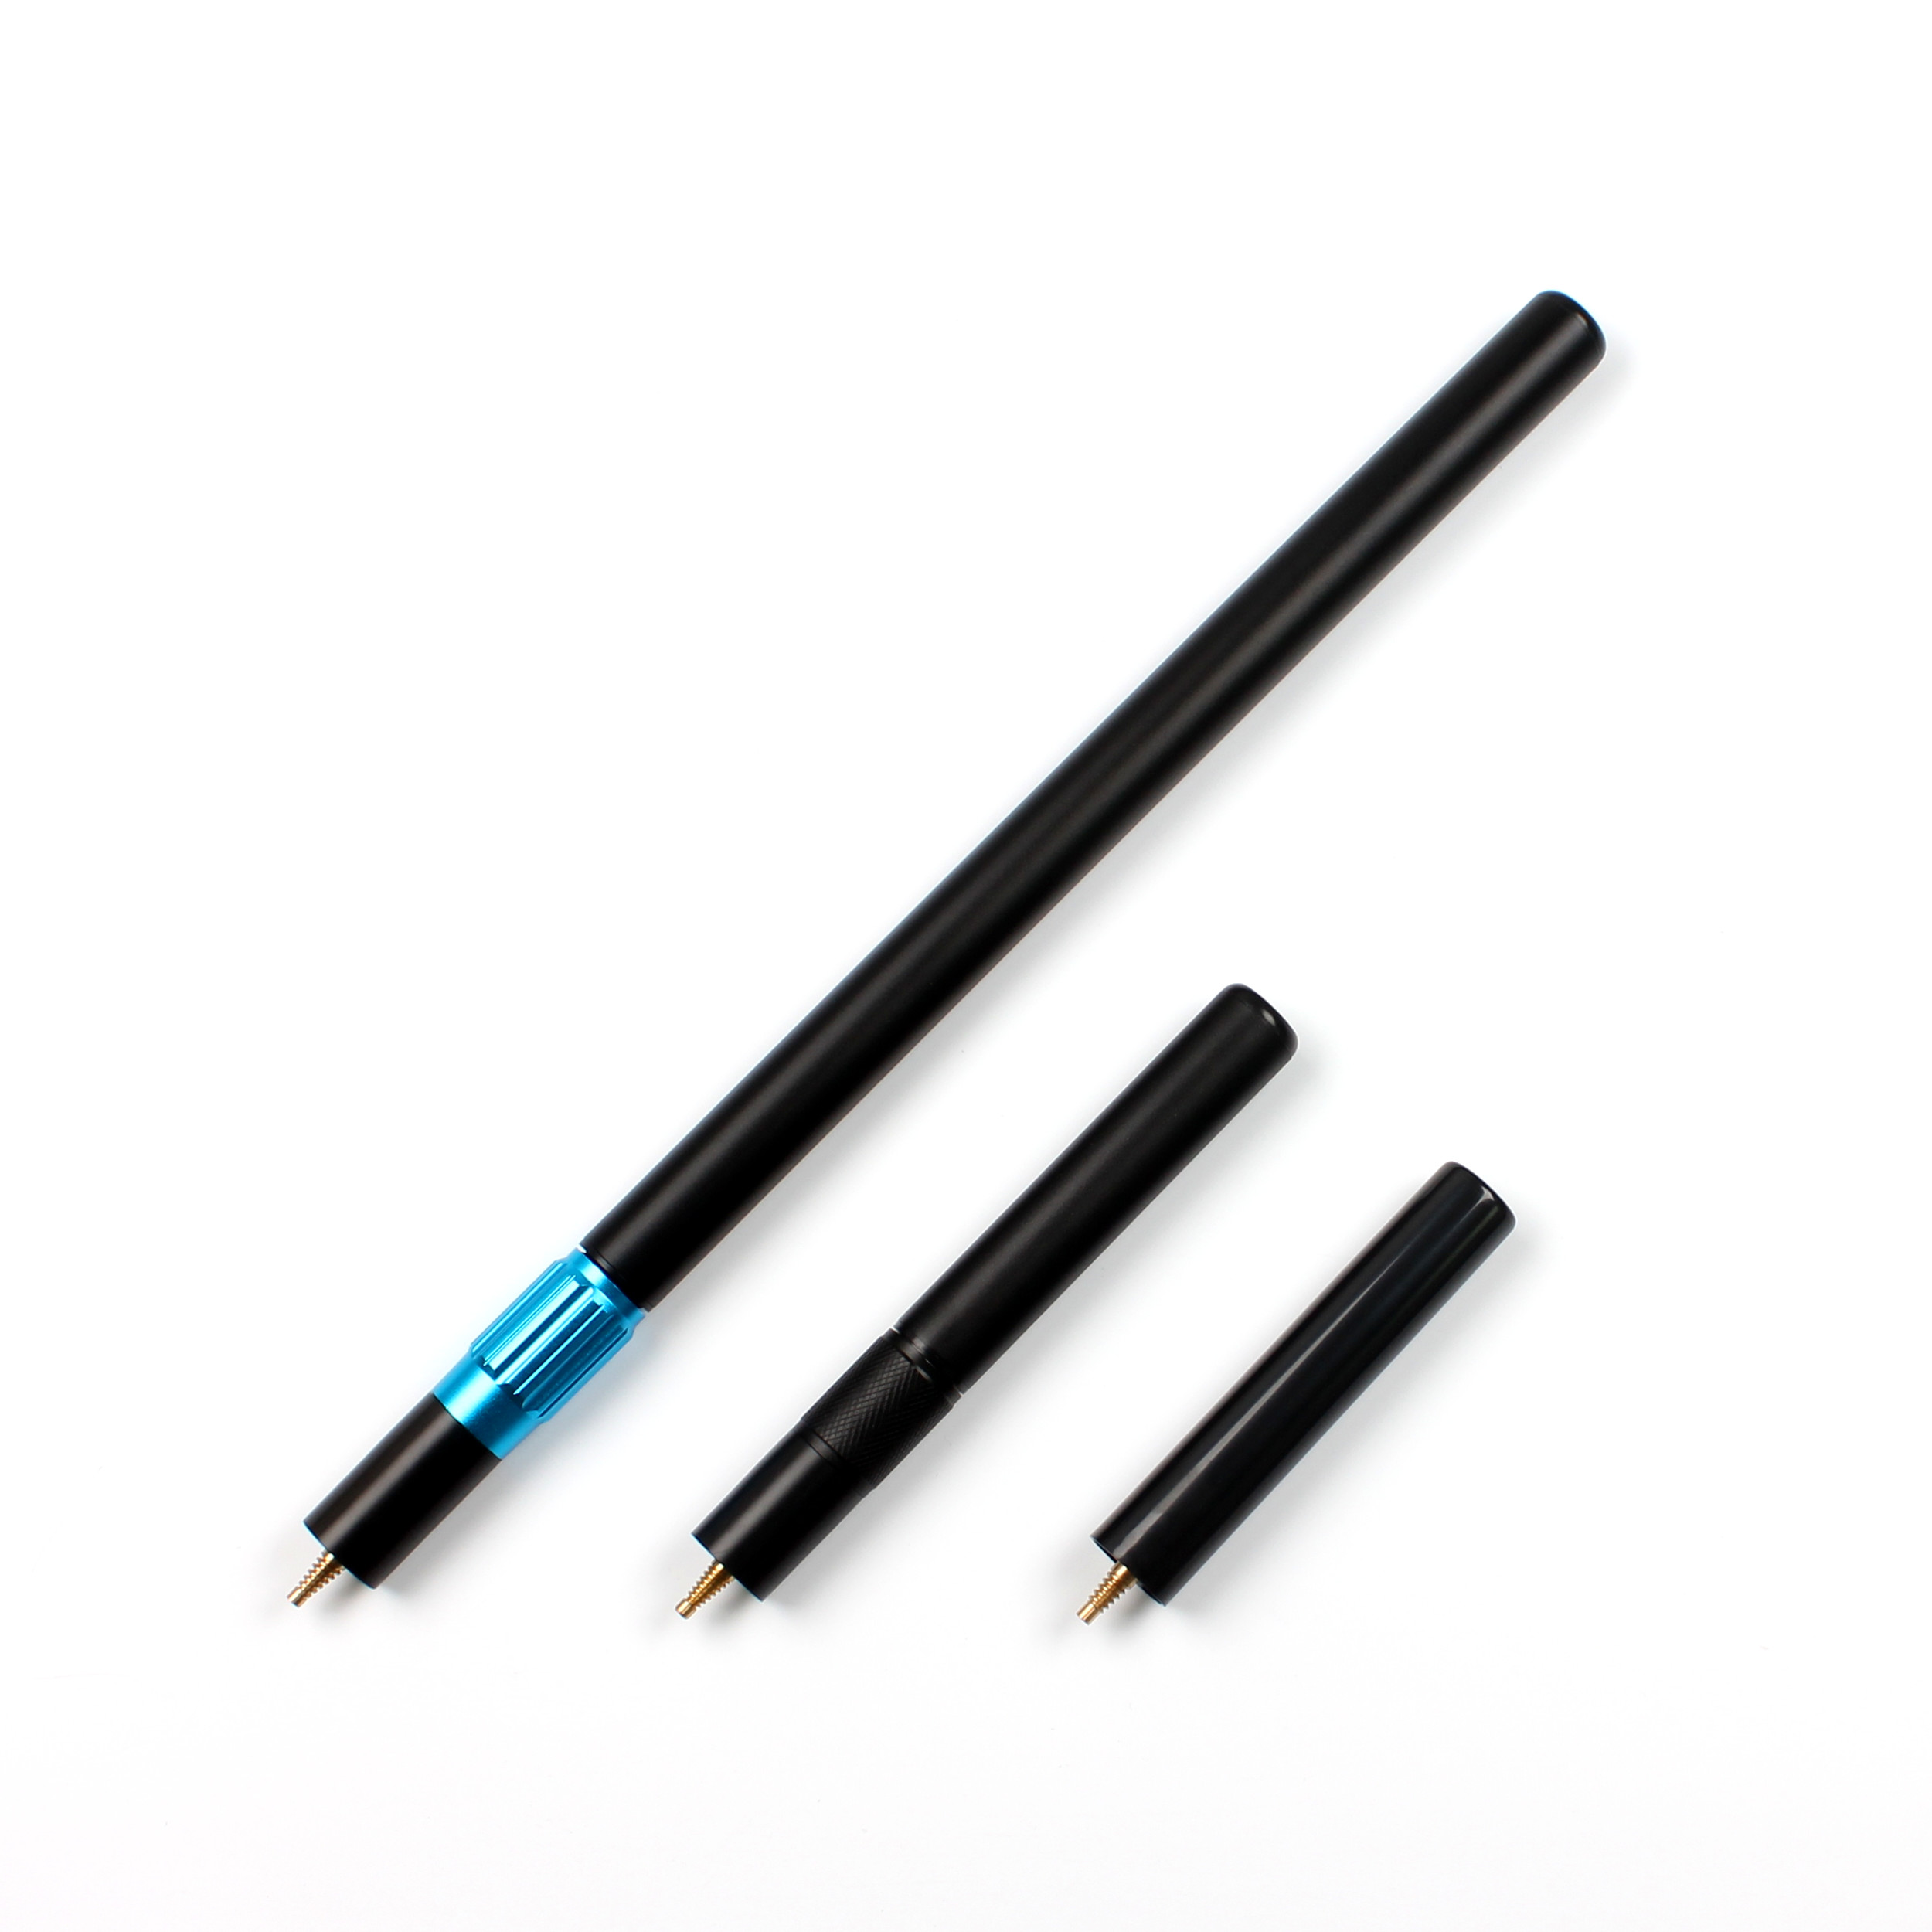 Weichster Snooker Cue Telescopic Extensions For Omin Snooker Cues